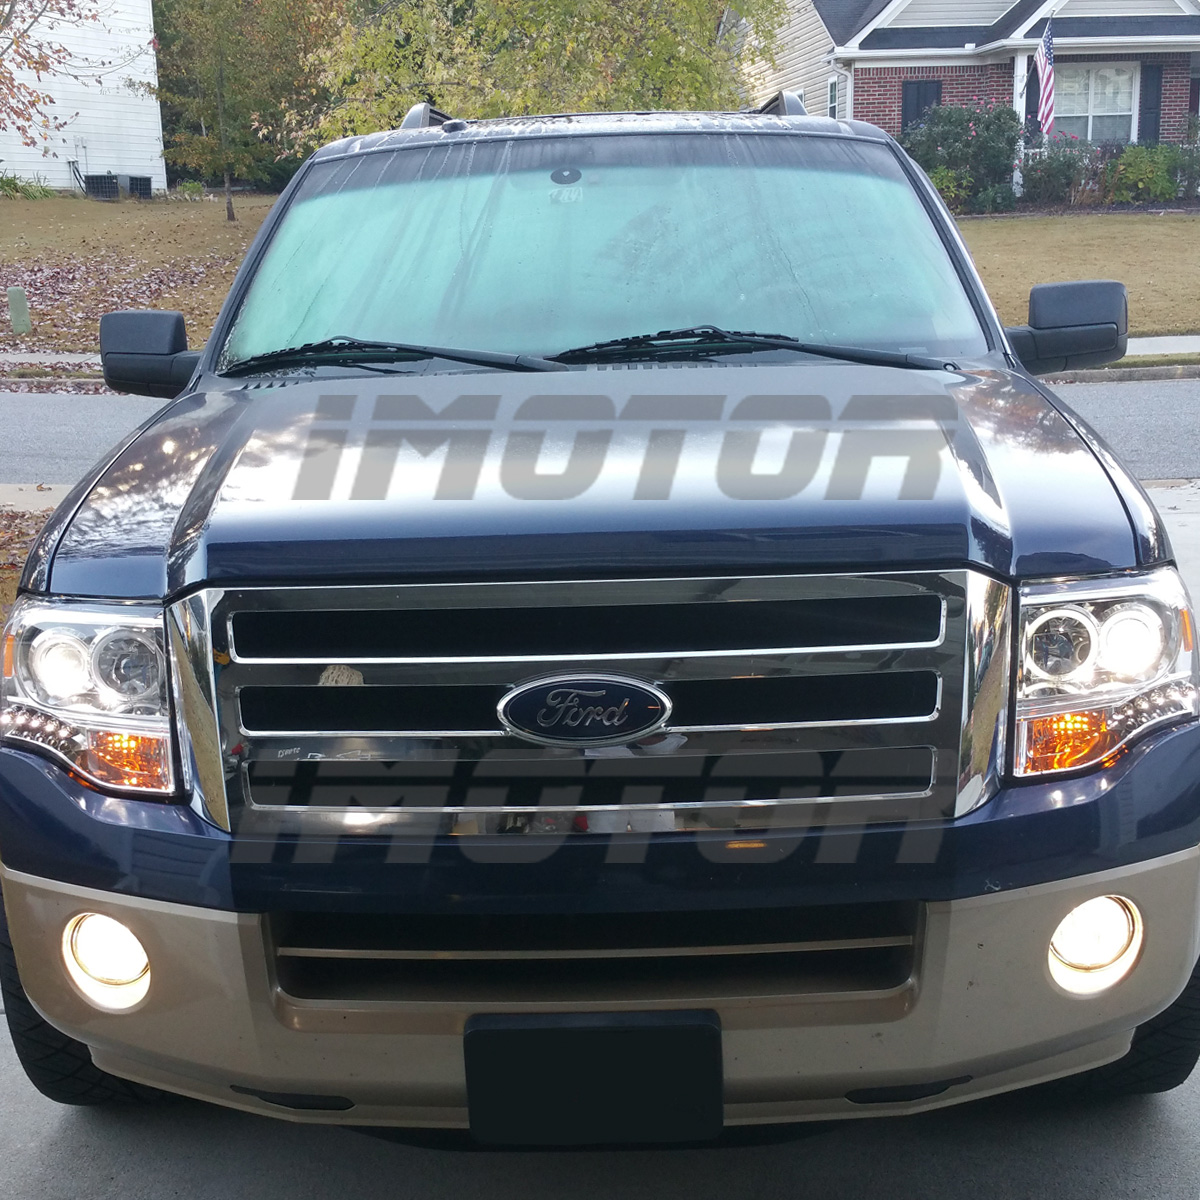 2009 Ford Expedition Exterior: [Dual CCFL Halo] 2007-2014 Ford Expedition Chrome LED